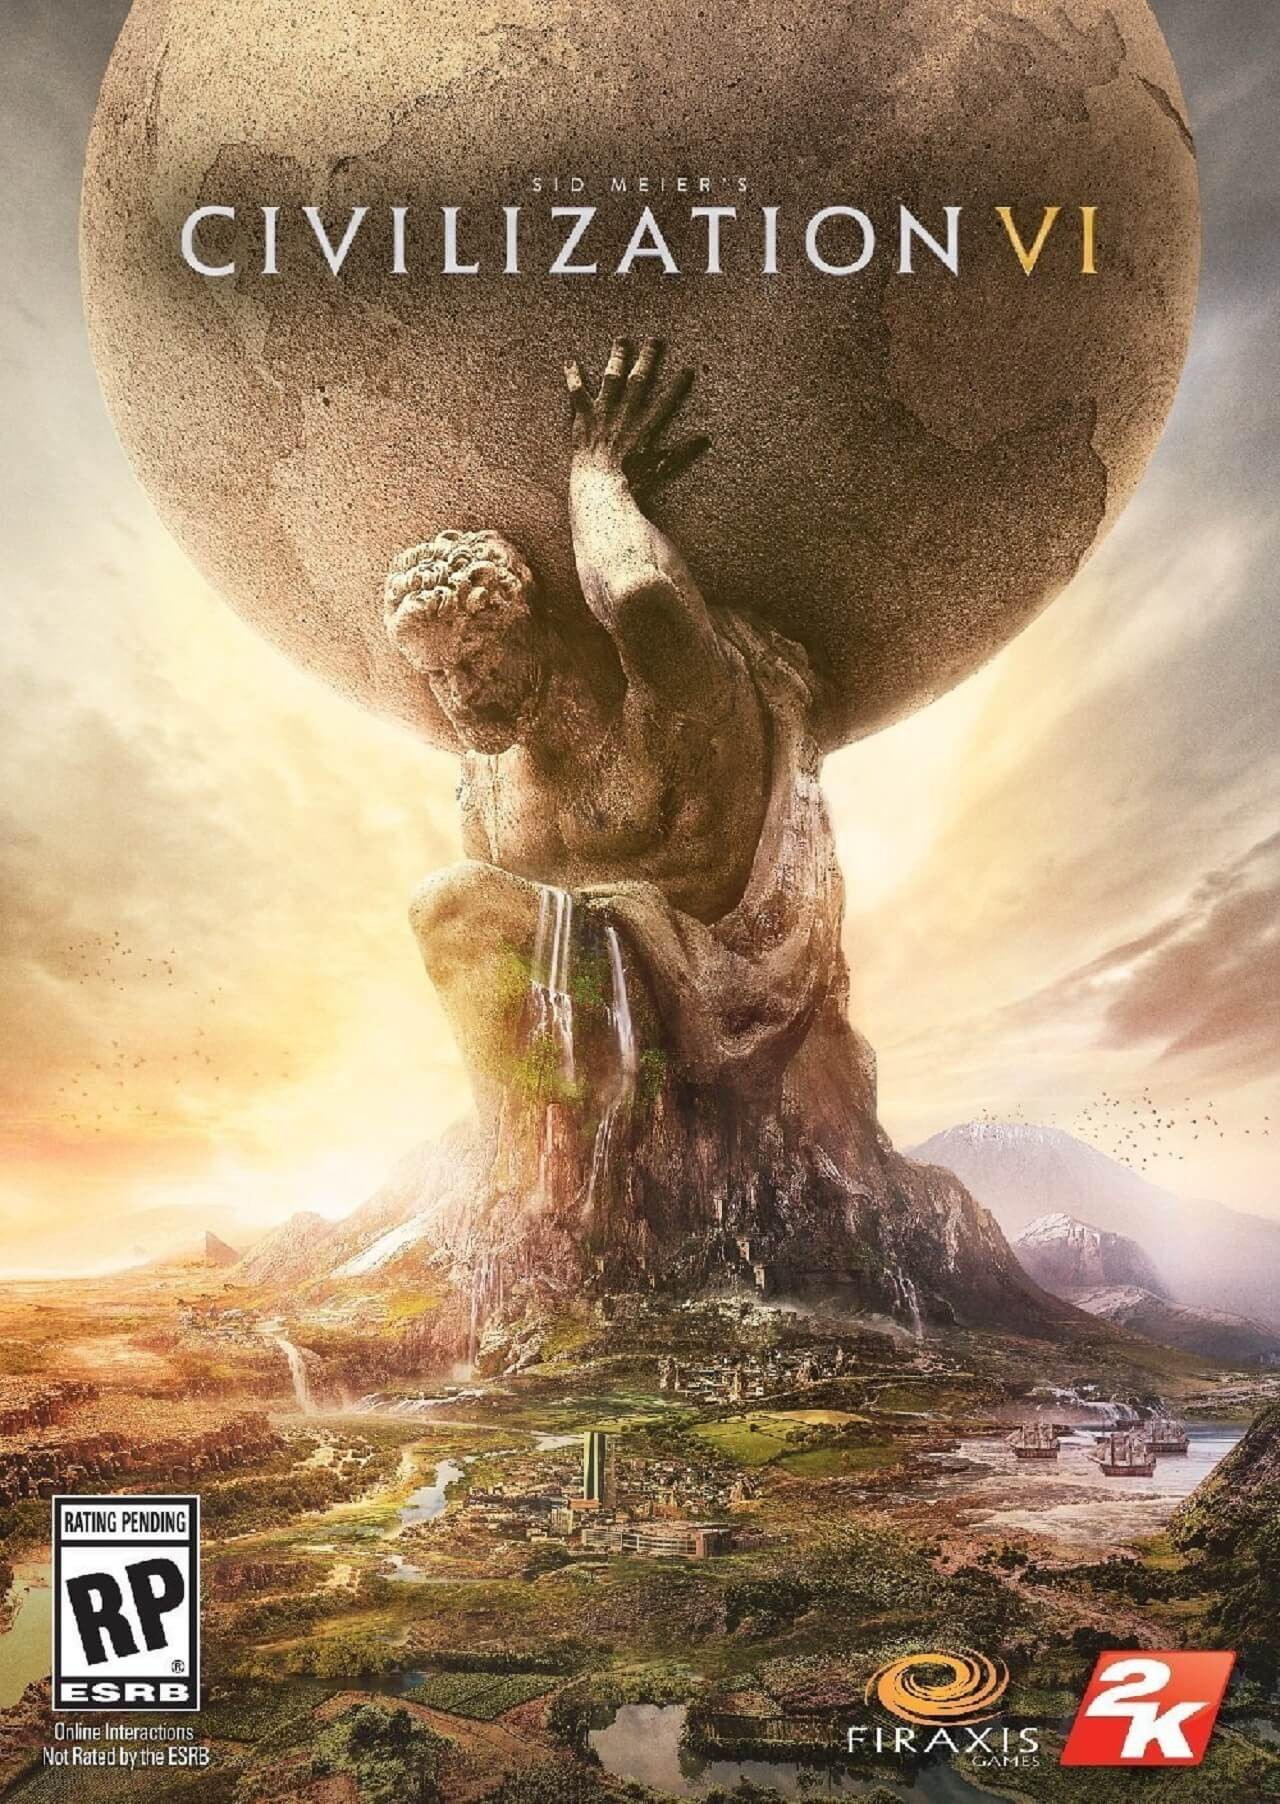 ������� Sid Meier's Civilization VI: Digital Deluxe (1.0.0.26) [2016 /Strategy, Real-time, 3D / PC / Repack] by Umdrella